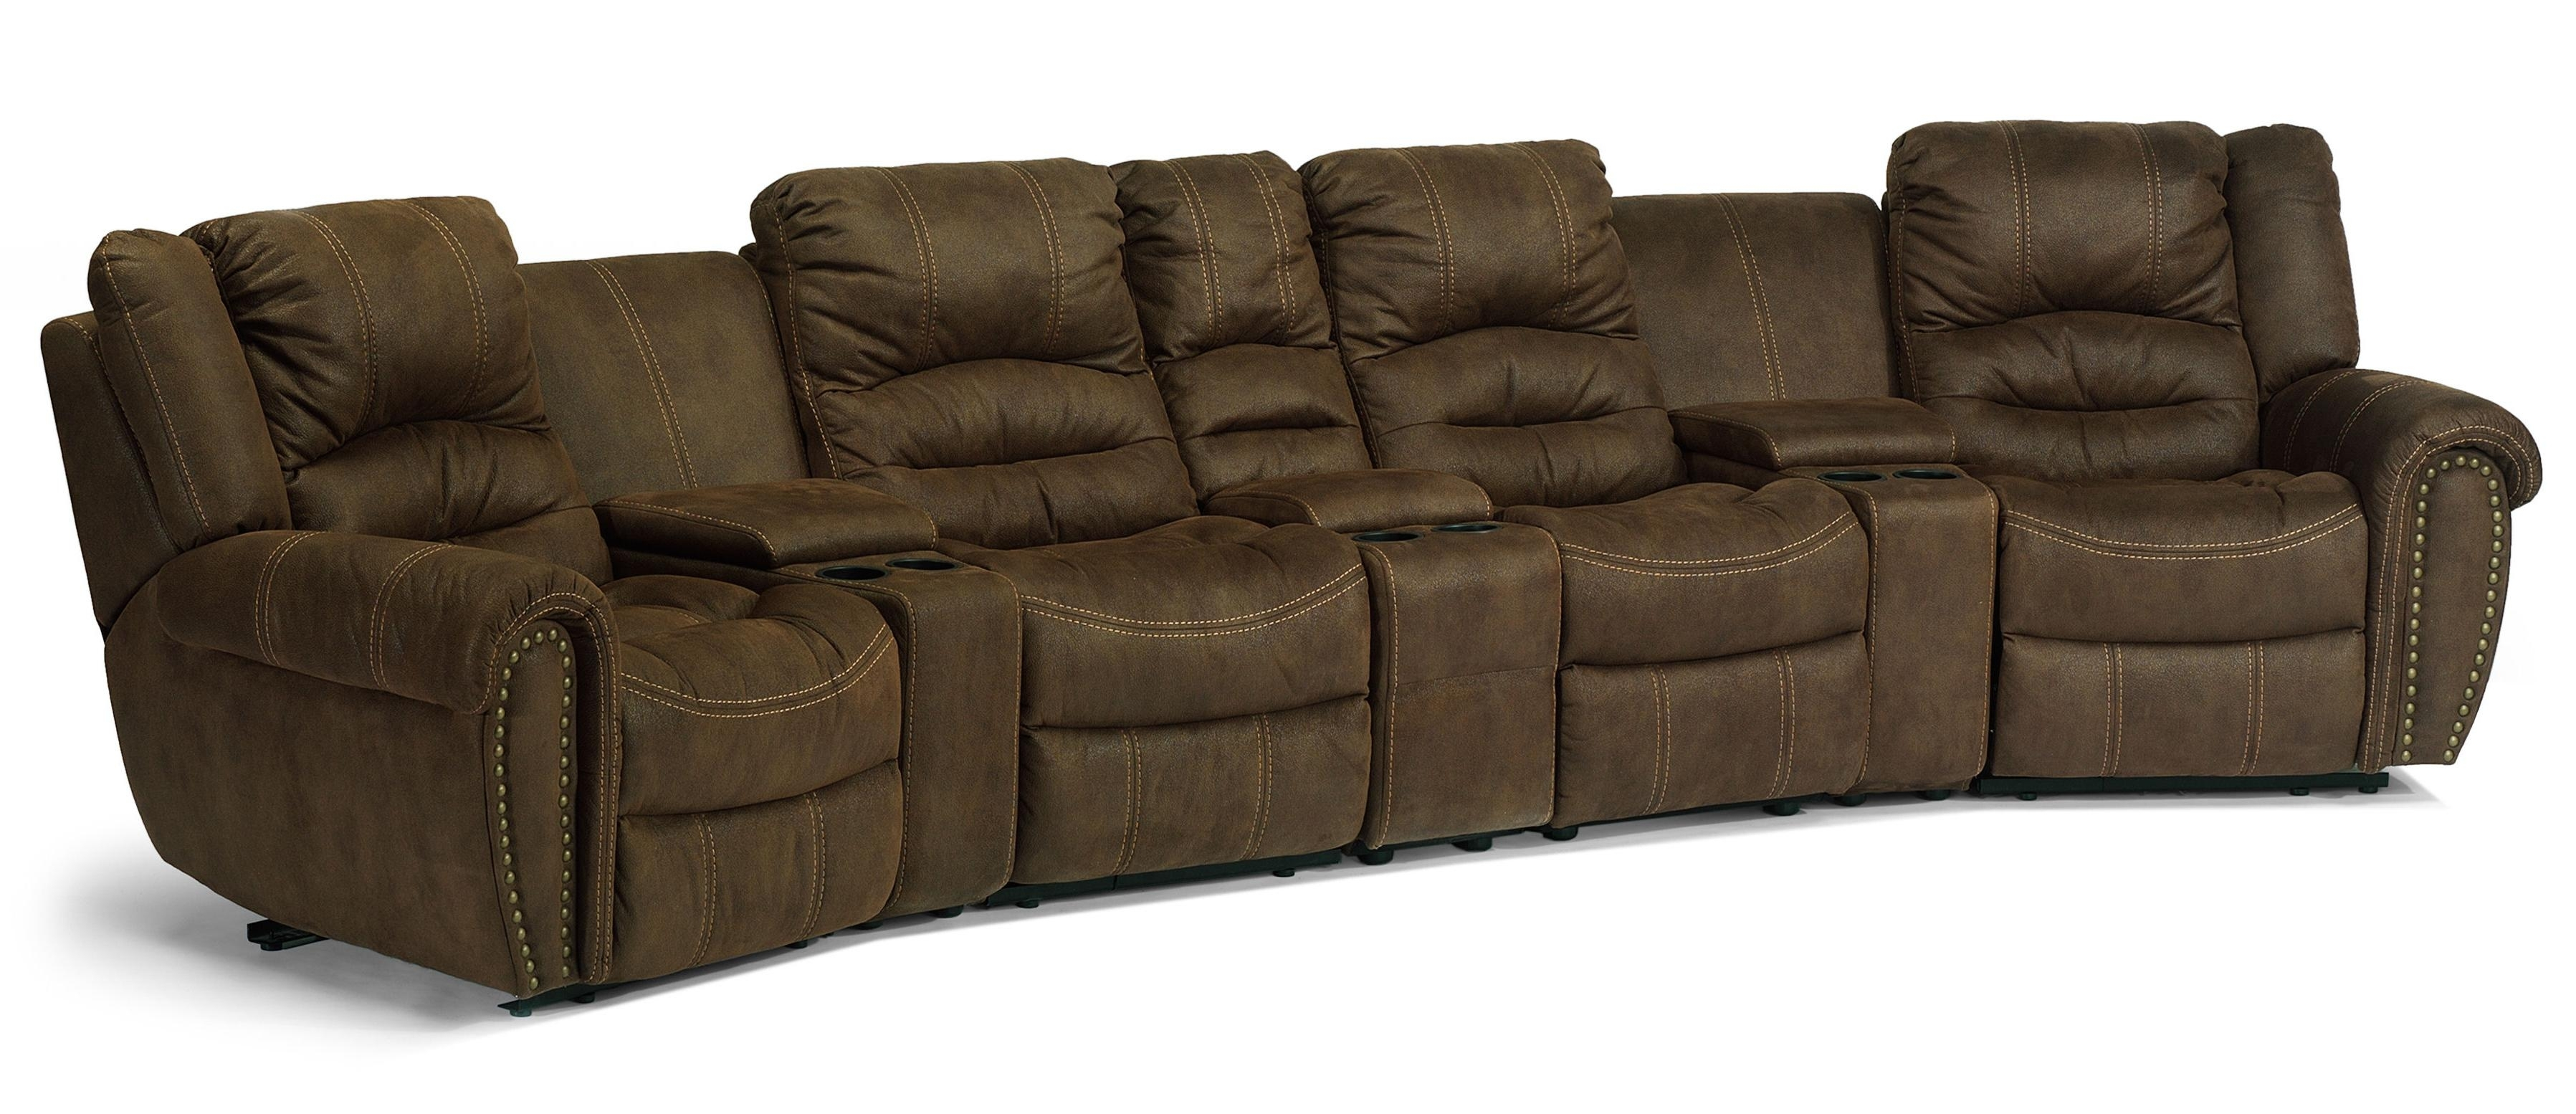 Flexsteel Latitudes – New Town Curved Reclining Sectional Sofa With For Johnson City Tn Sectional Sofas (Image 3 of 10)